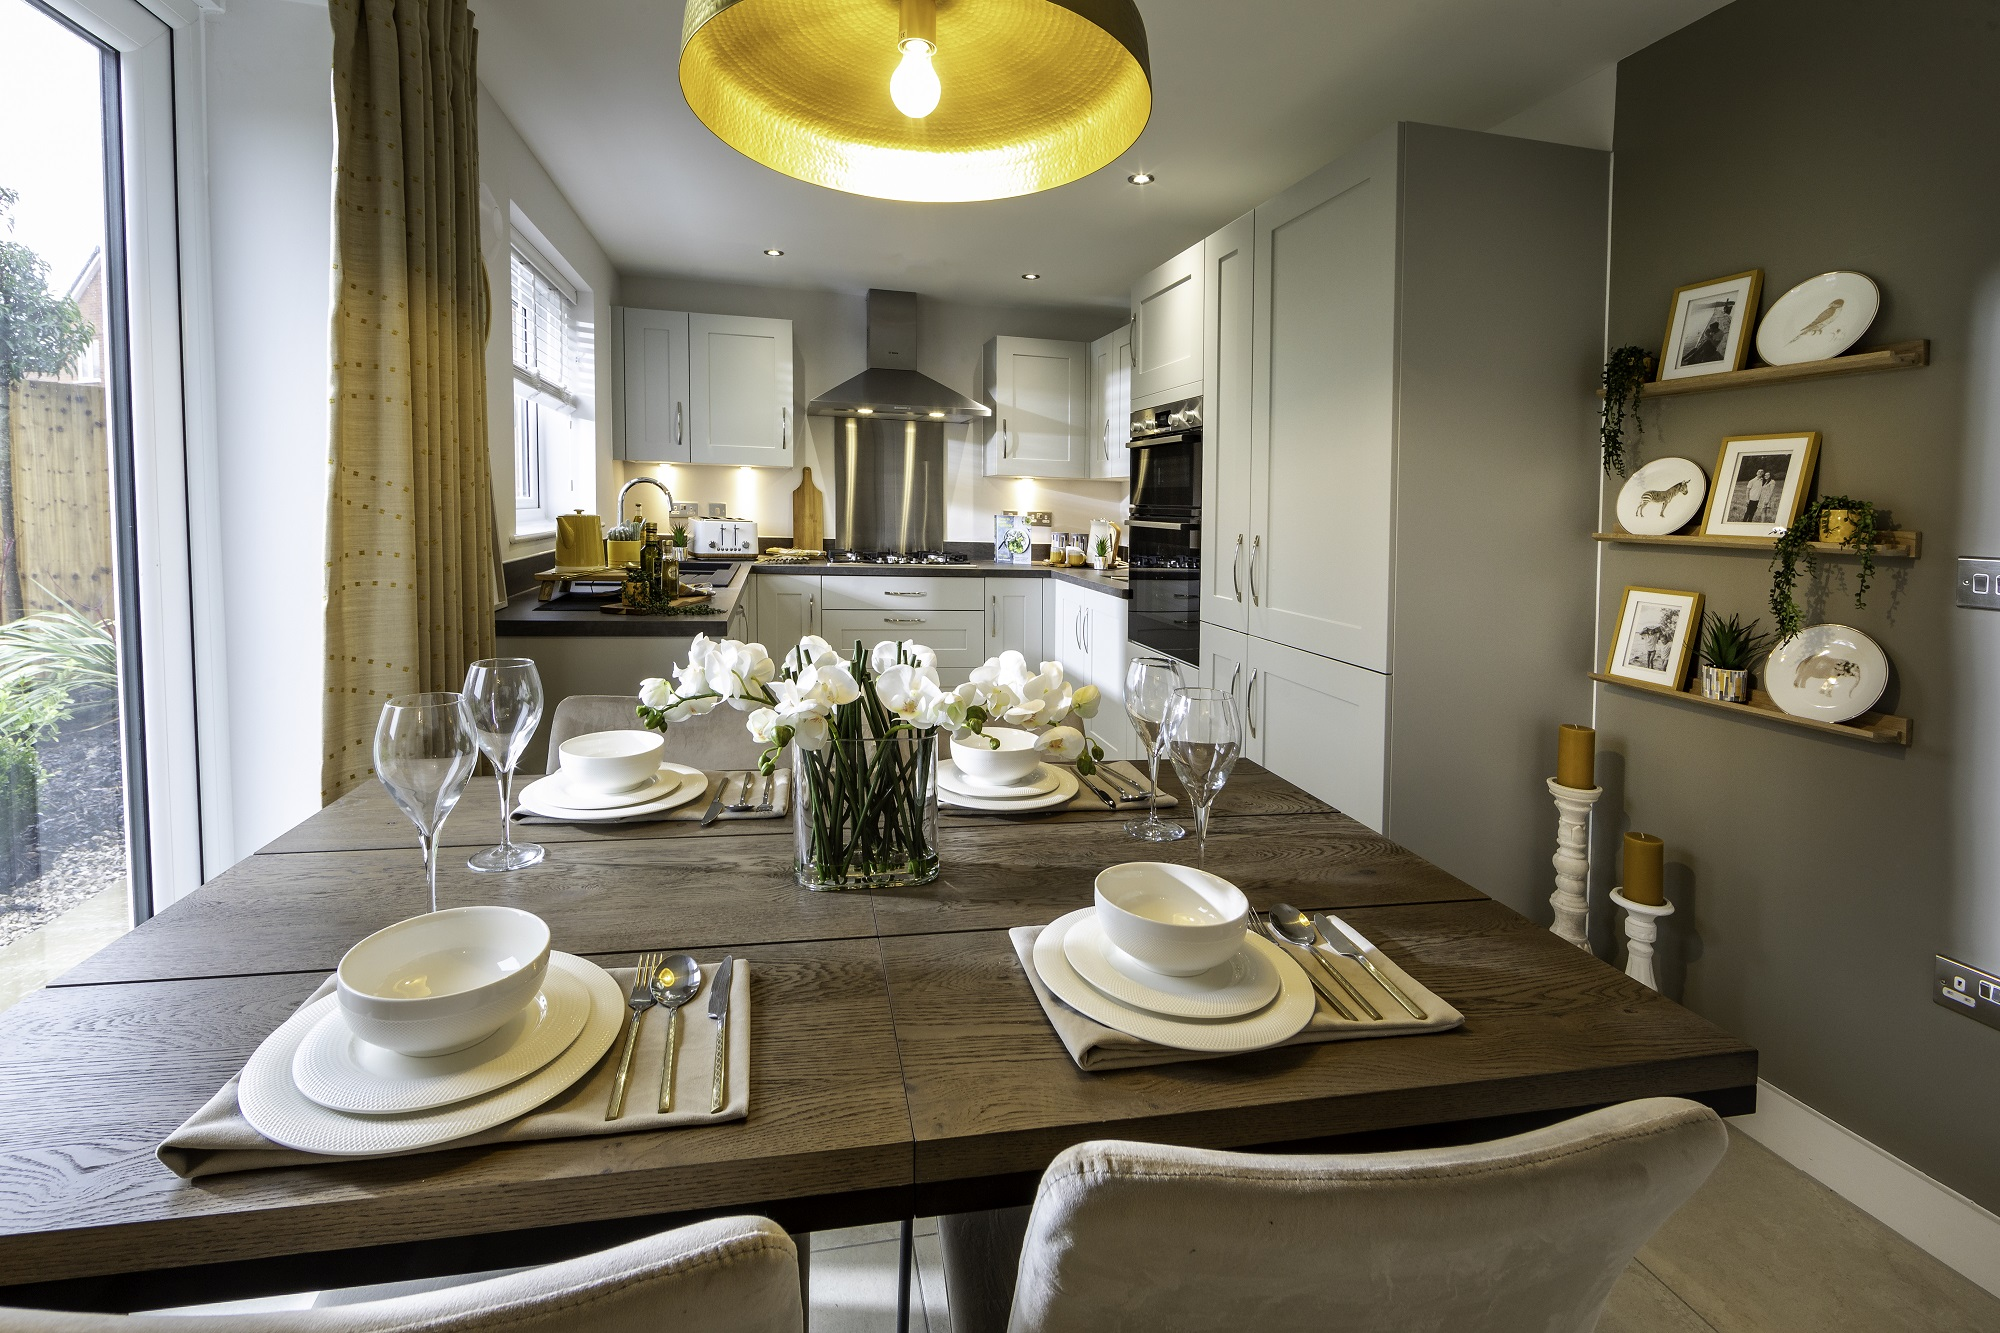 WHAT BUYERS WANT: ONLINE EVENT PAINTS A PICTURE OF THE DREAM LANCASHIRE HOME